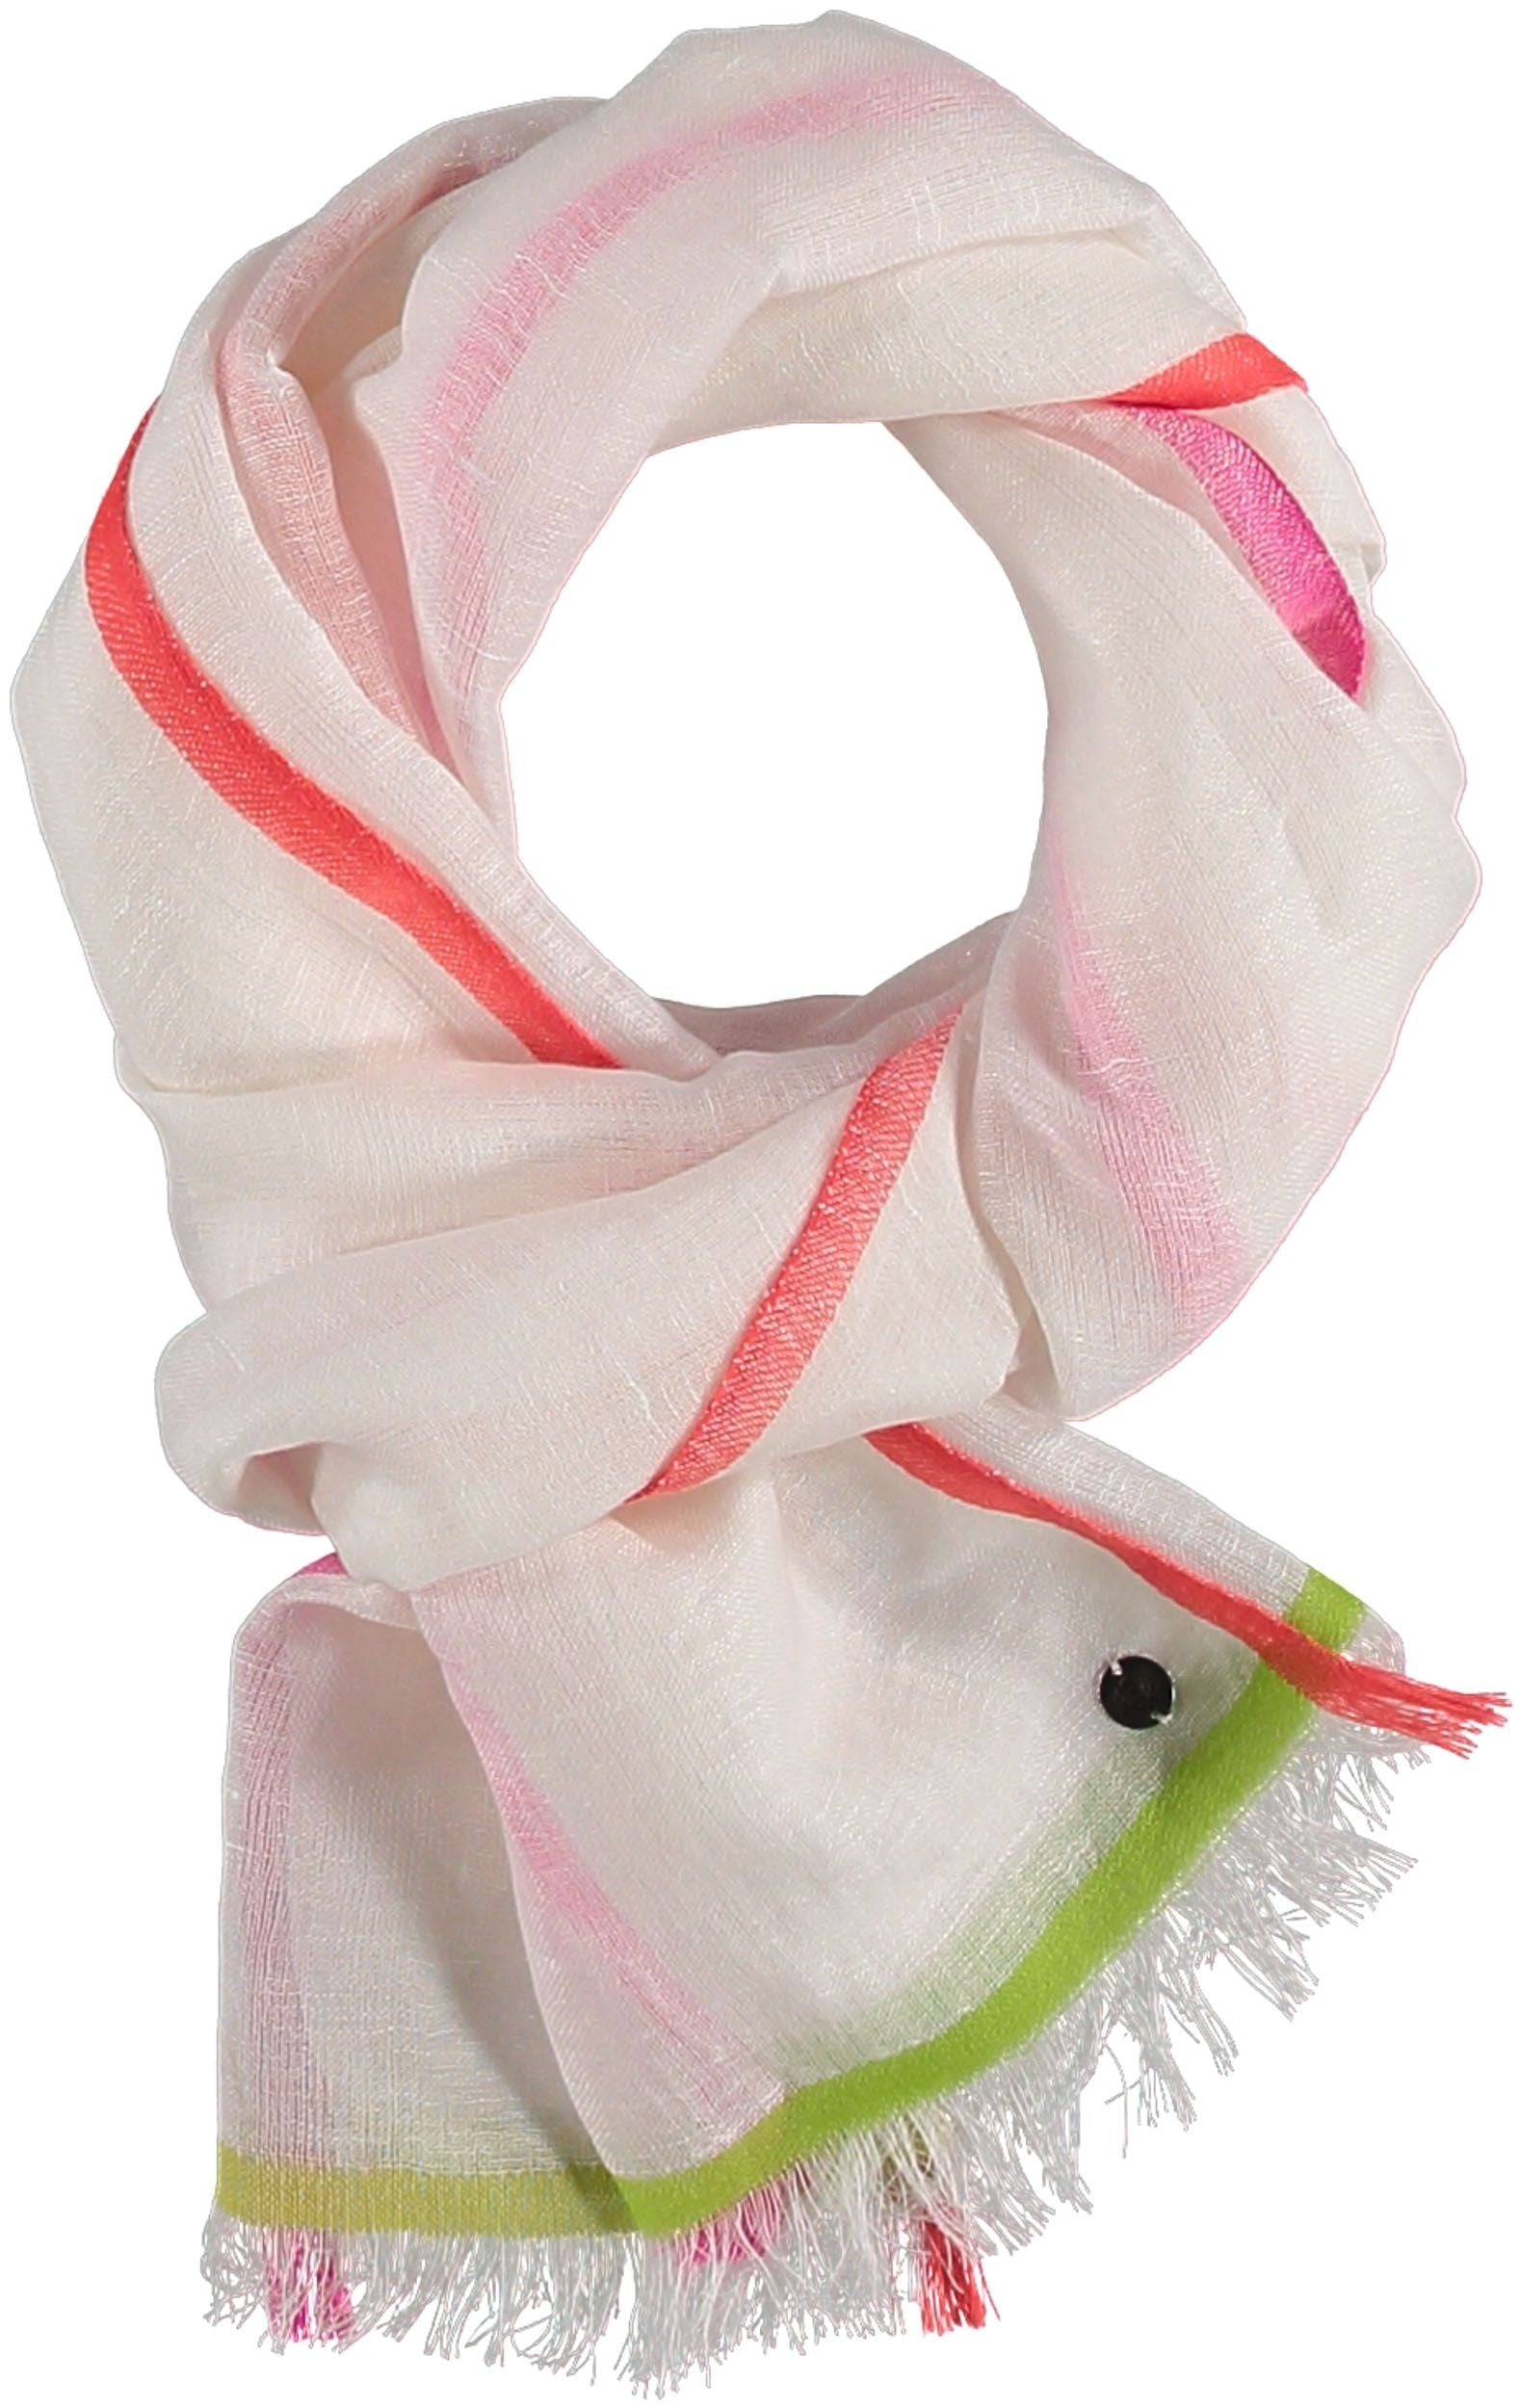 Bright Border Cotton Linen Woven Scarf